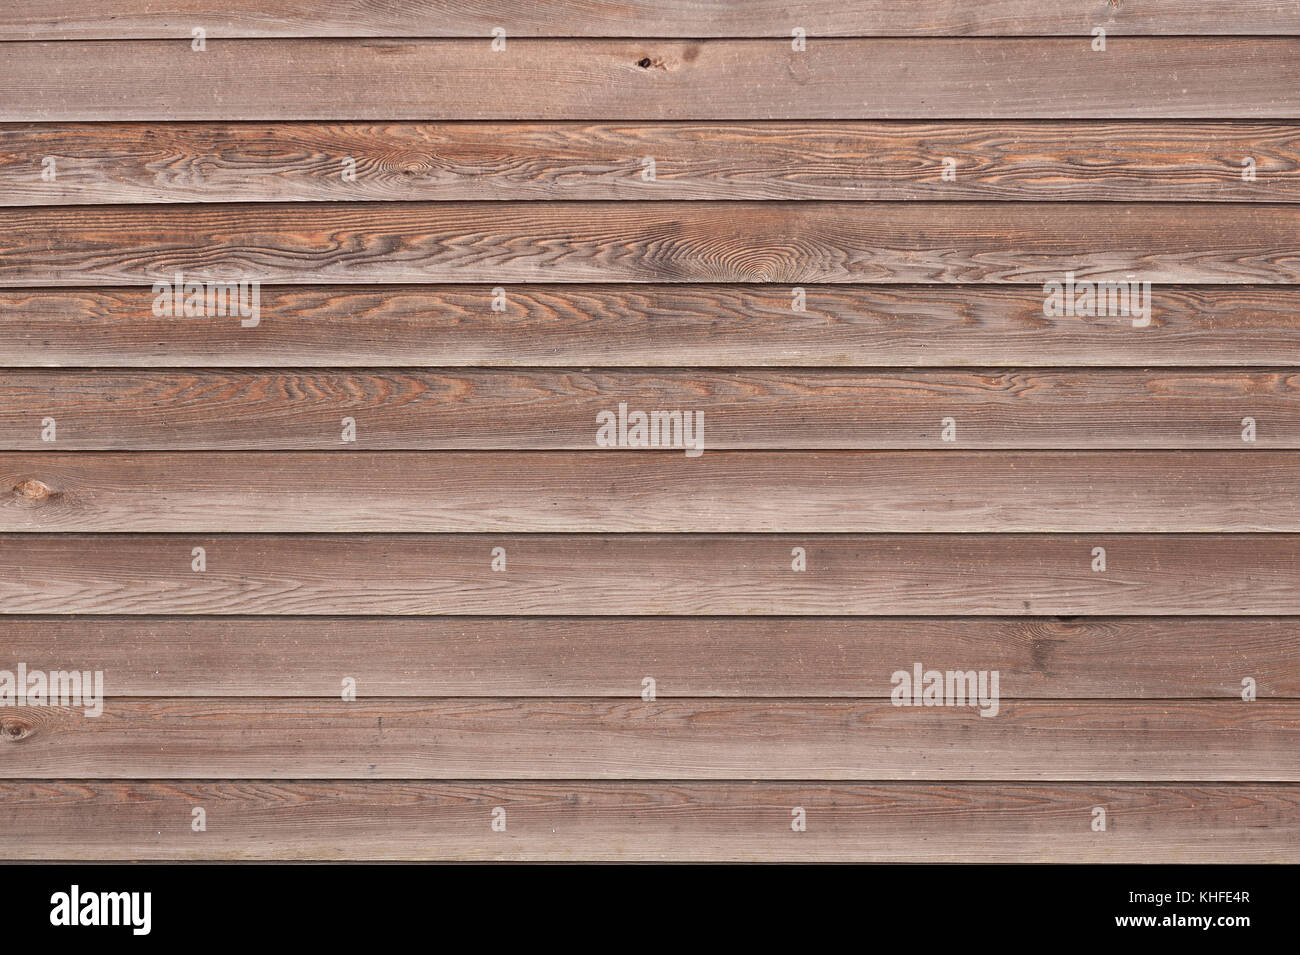 Wooden Cladding Stock Photos & Wooden Cladding Stock Images - Alamy